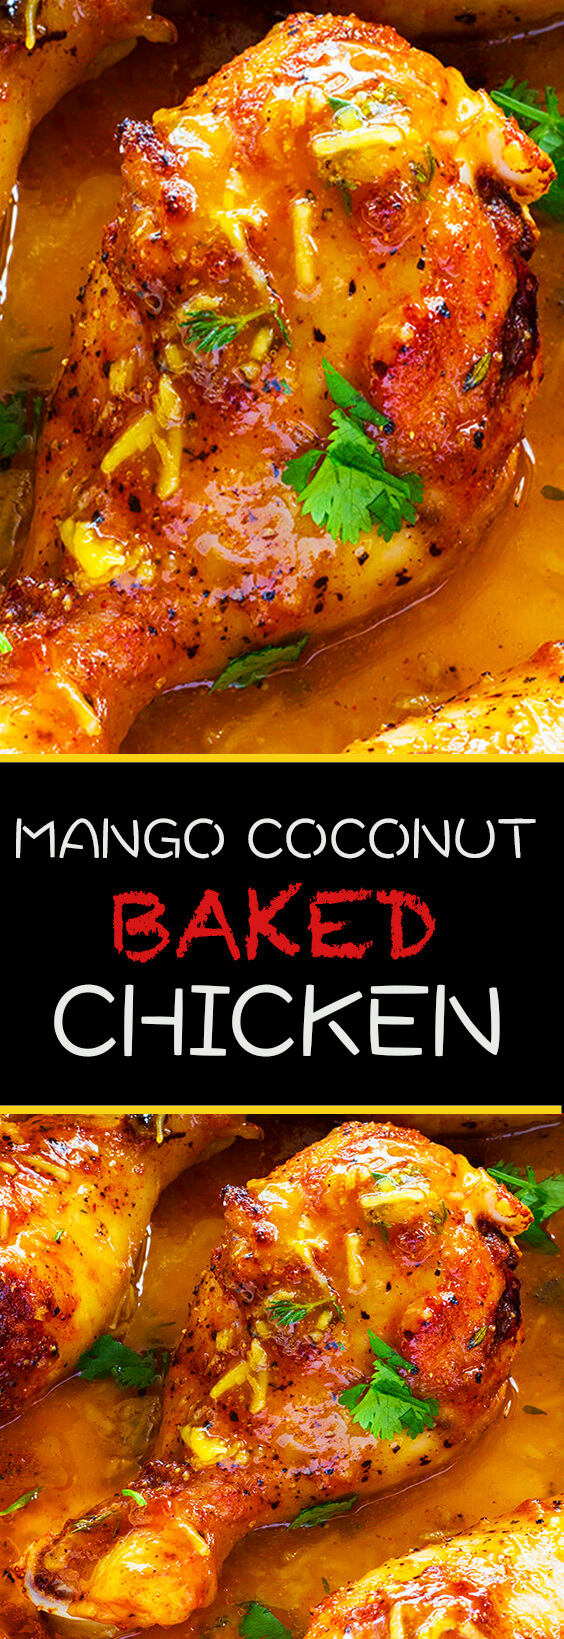 Mango Coconut Habanero Baked Chicken Cooking Maniac